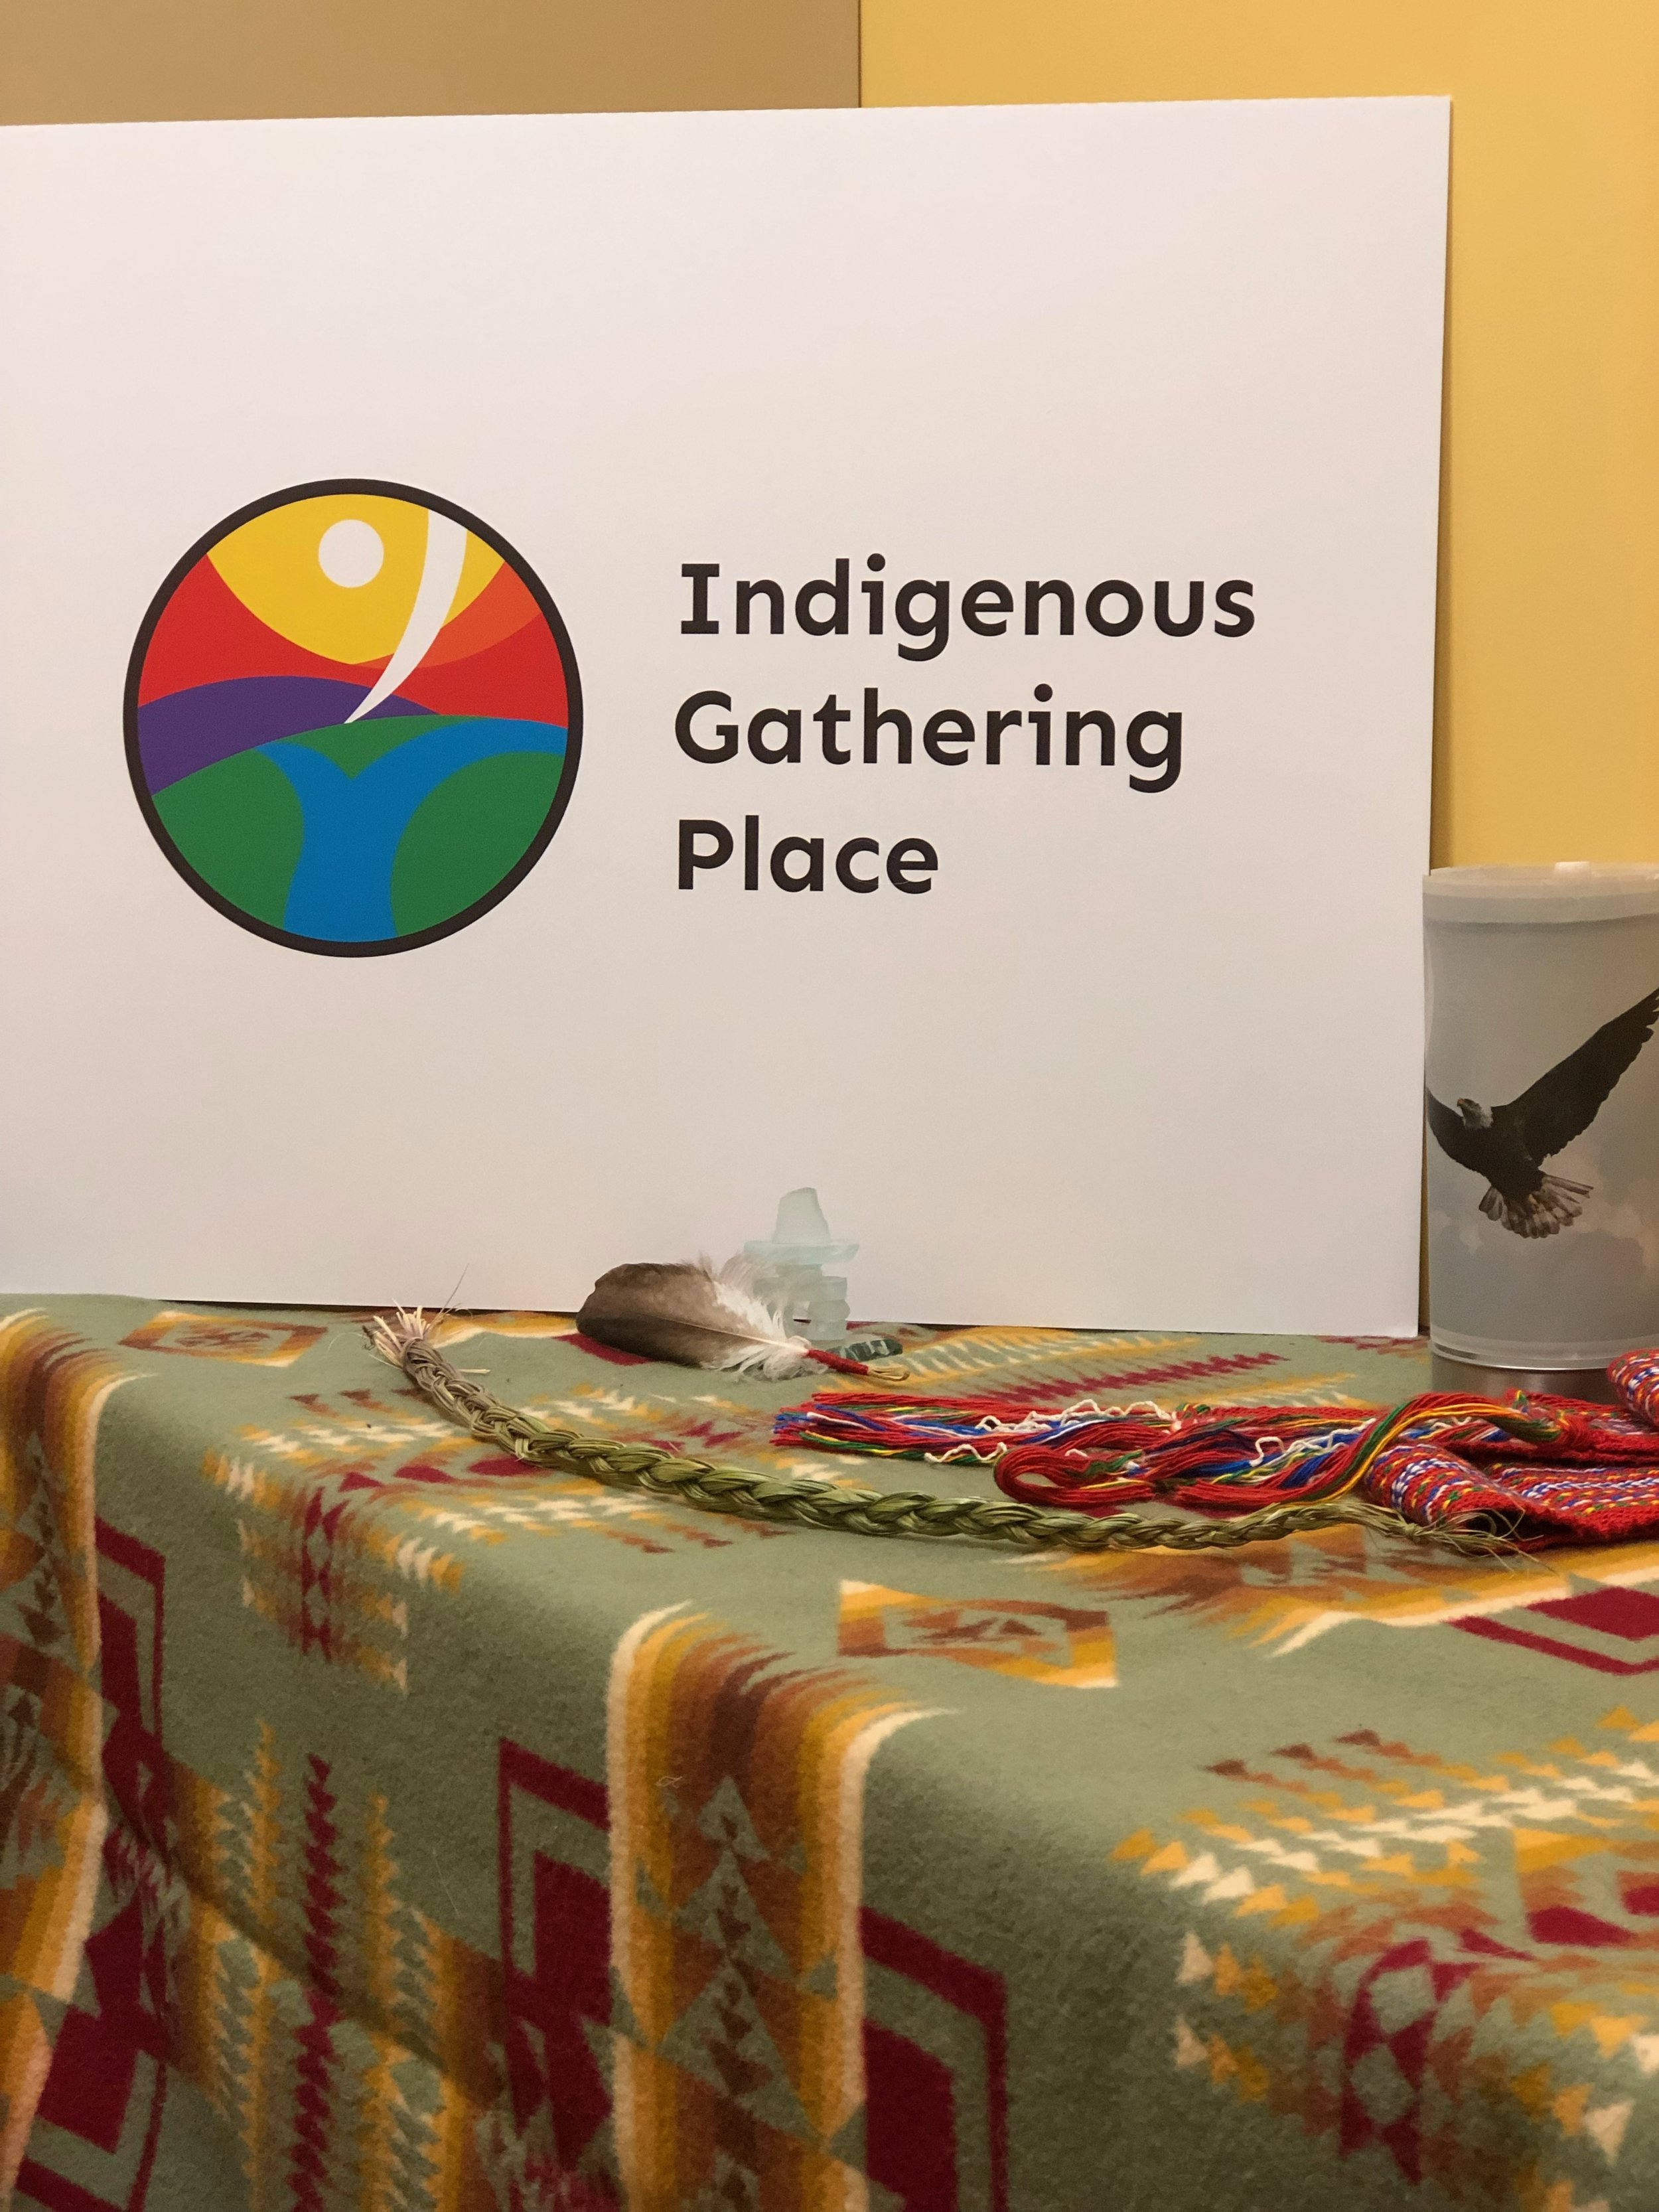 About Us - The Indigenous Gathering Place Society of Calgary, the Elders and Indigenous youth that guide our journey, our seven-member board of directors, and the many volunteers and committee members make up the Gathering Place.We are a non-profit organization formed in direct response to the call for a reconciled Canada. We respect both Western written protocols and traditional Indigenous ways of knowing and being in all our relations.